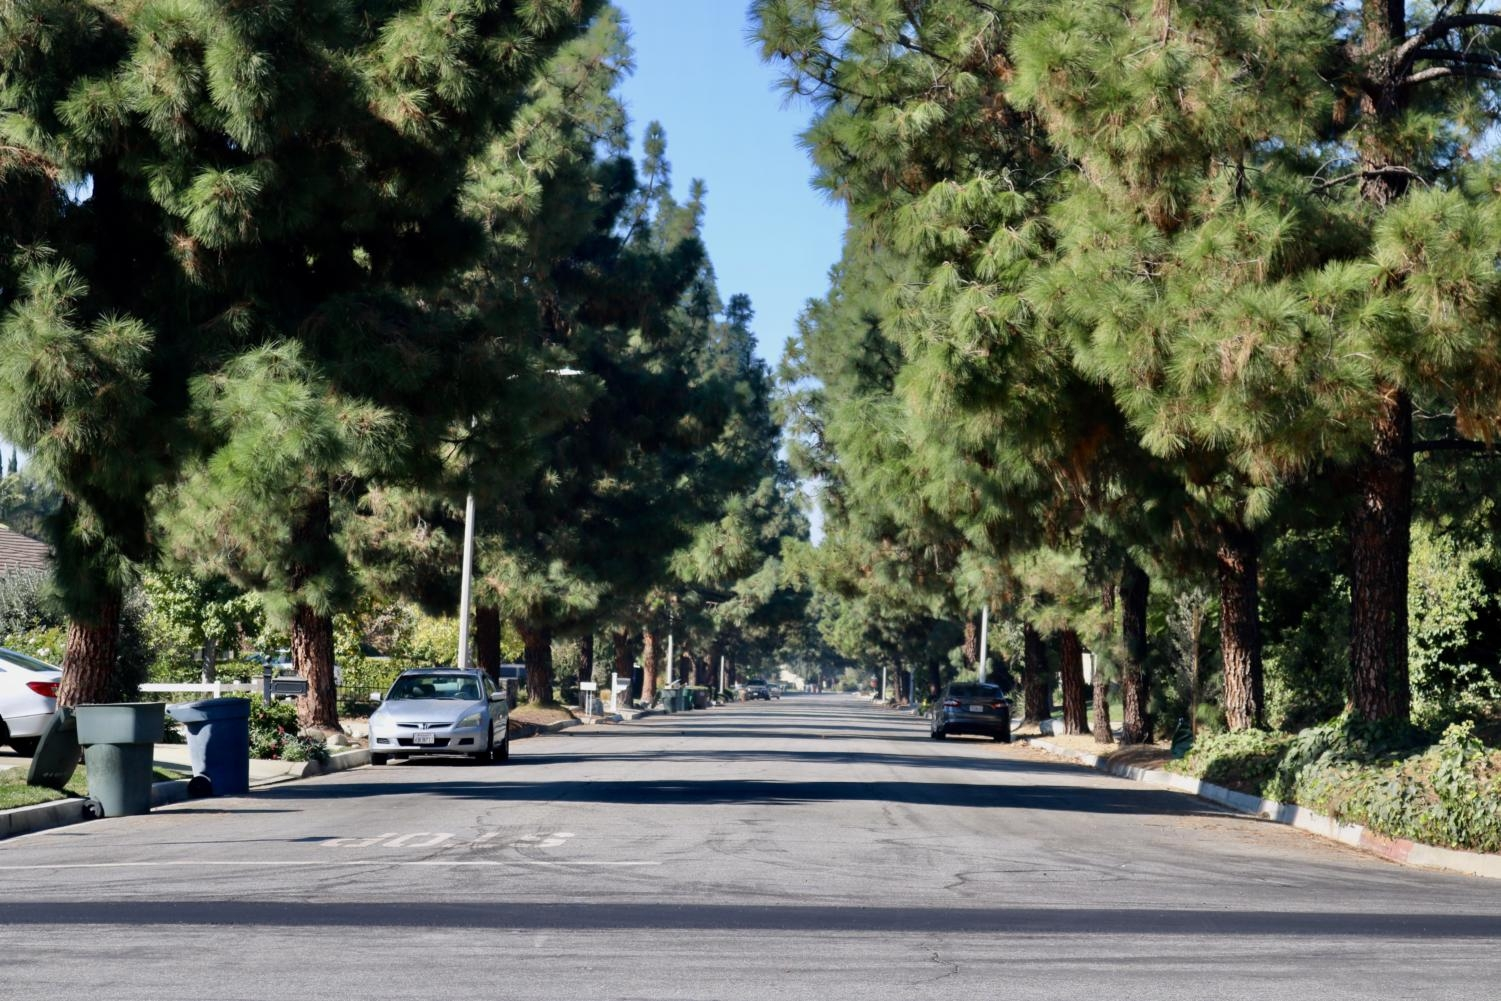 Claremont's abundance of trees is shown on Grand Ave., where both sides of the street are lined with pine trees.